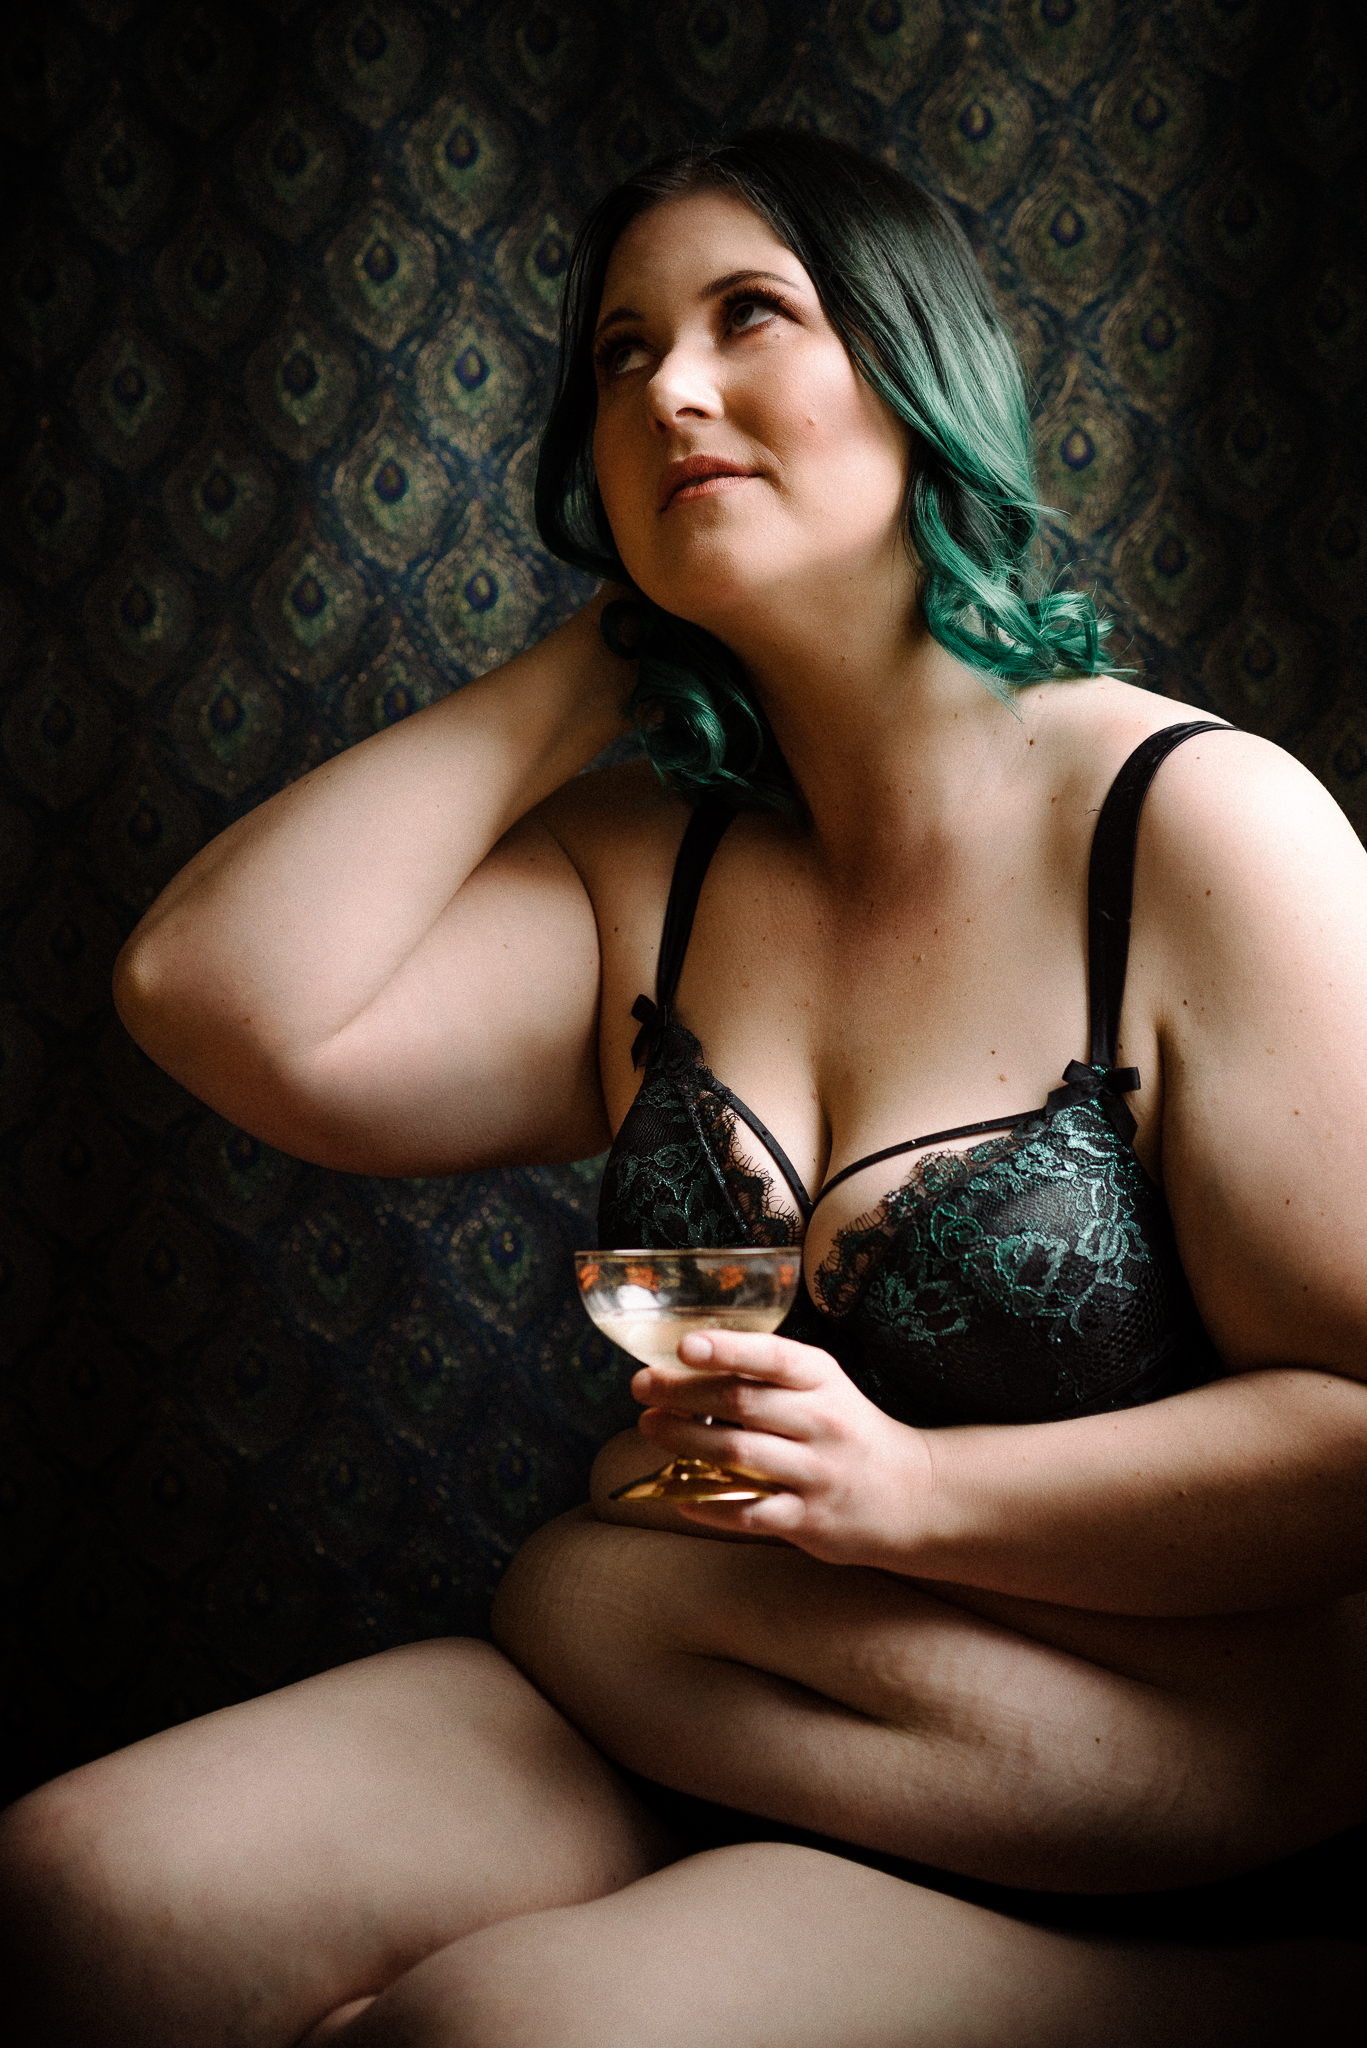 Boudoir photo of a lady with green hair against a peacock backdrop